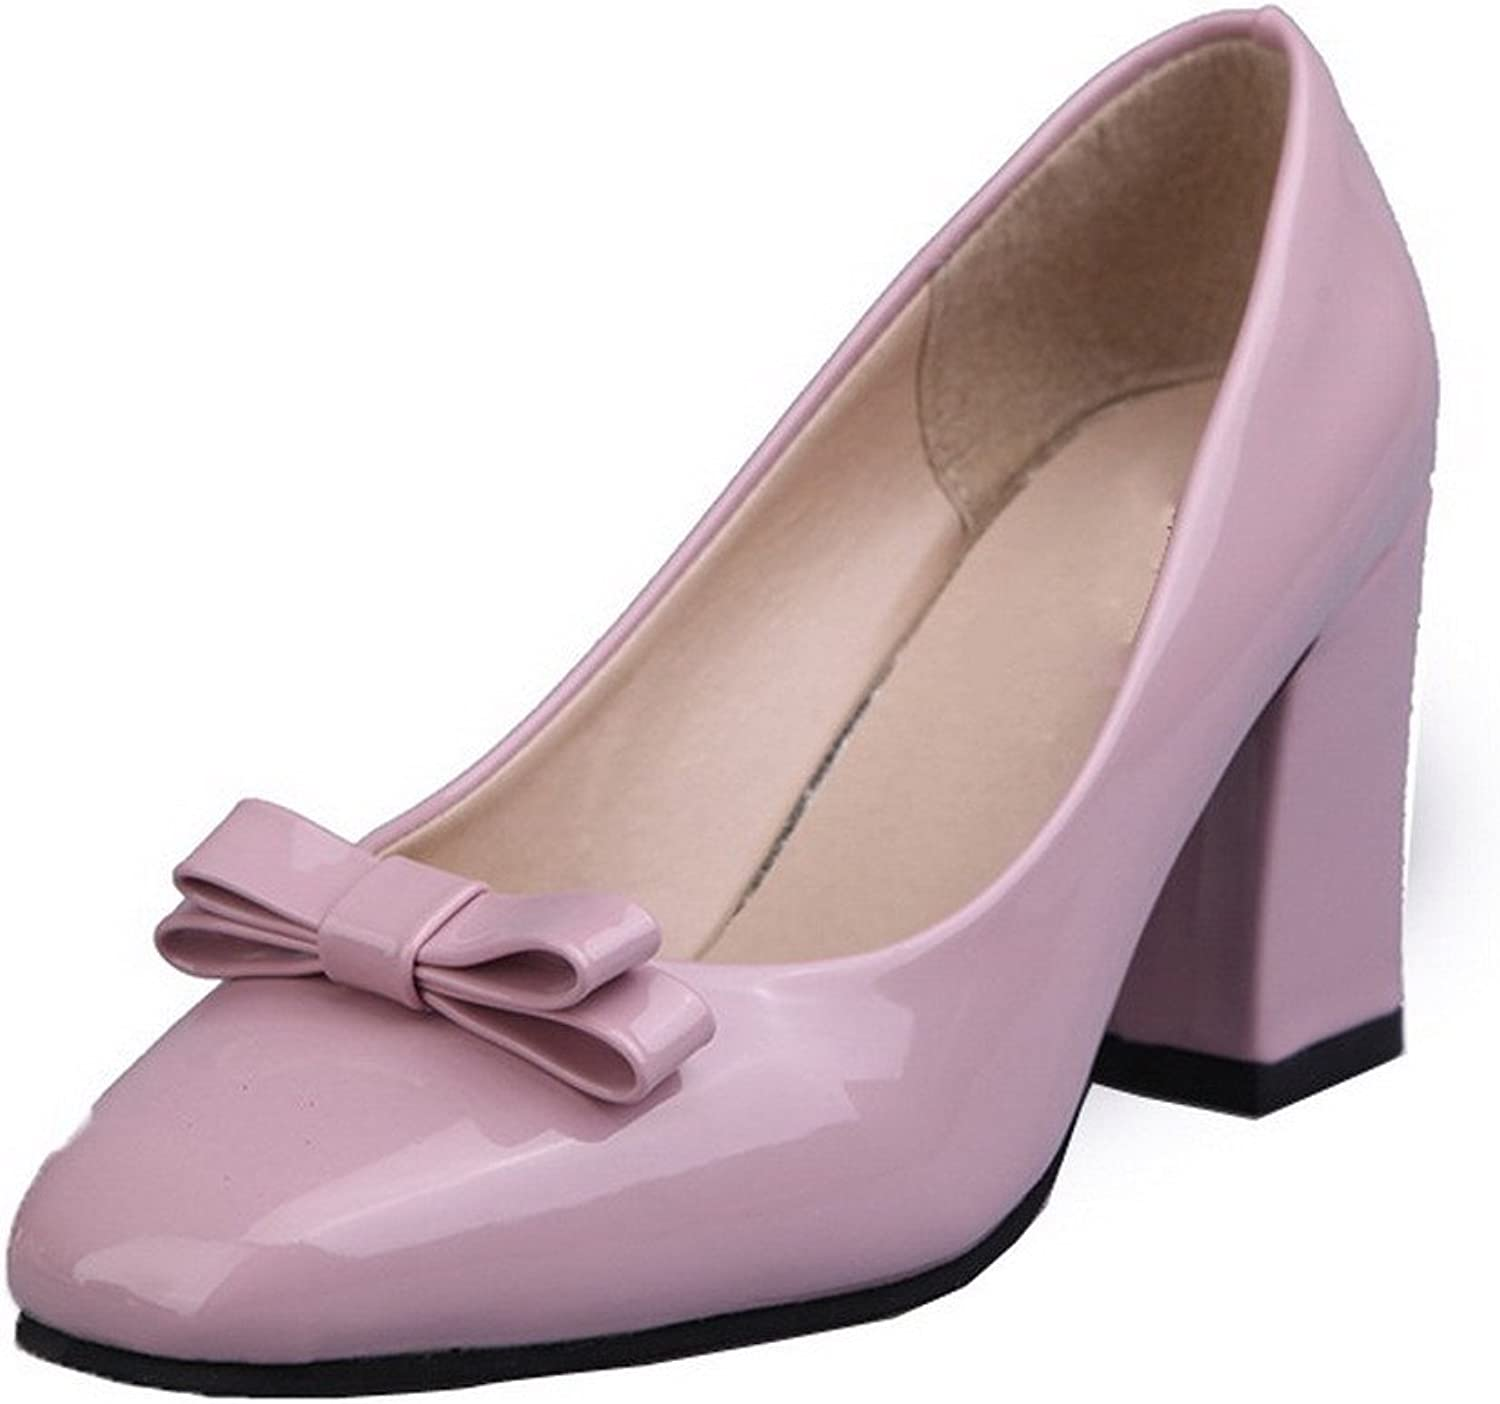 WeenFashion Women's Closed-Toe High-Heels PU Solid Pull-On Pumps-shoes, Pink, 35